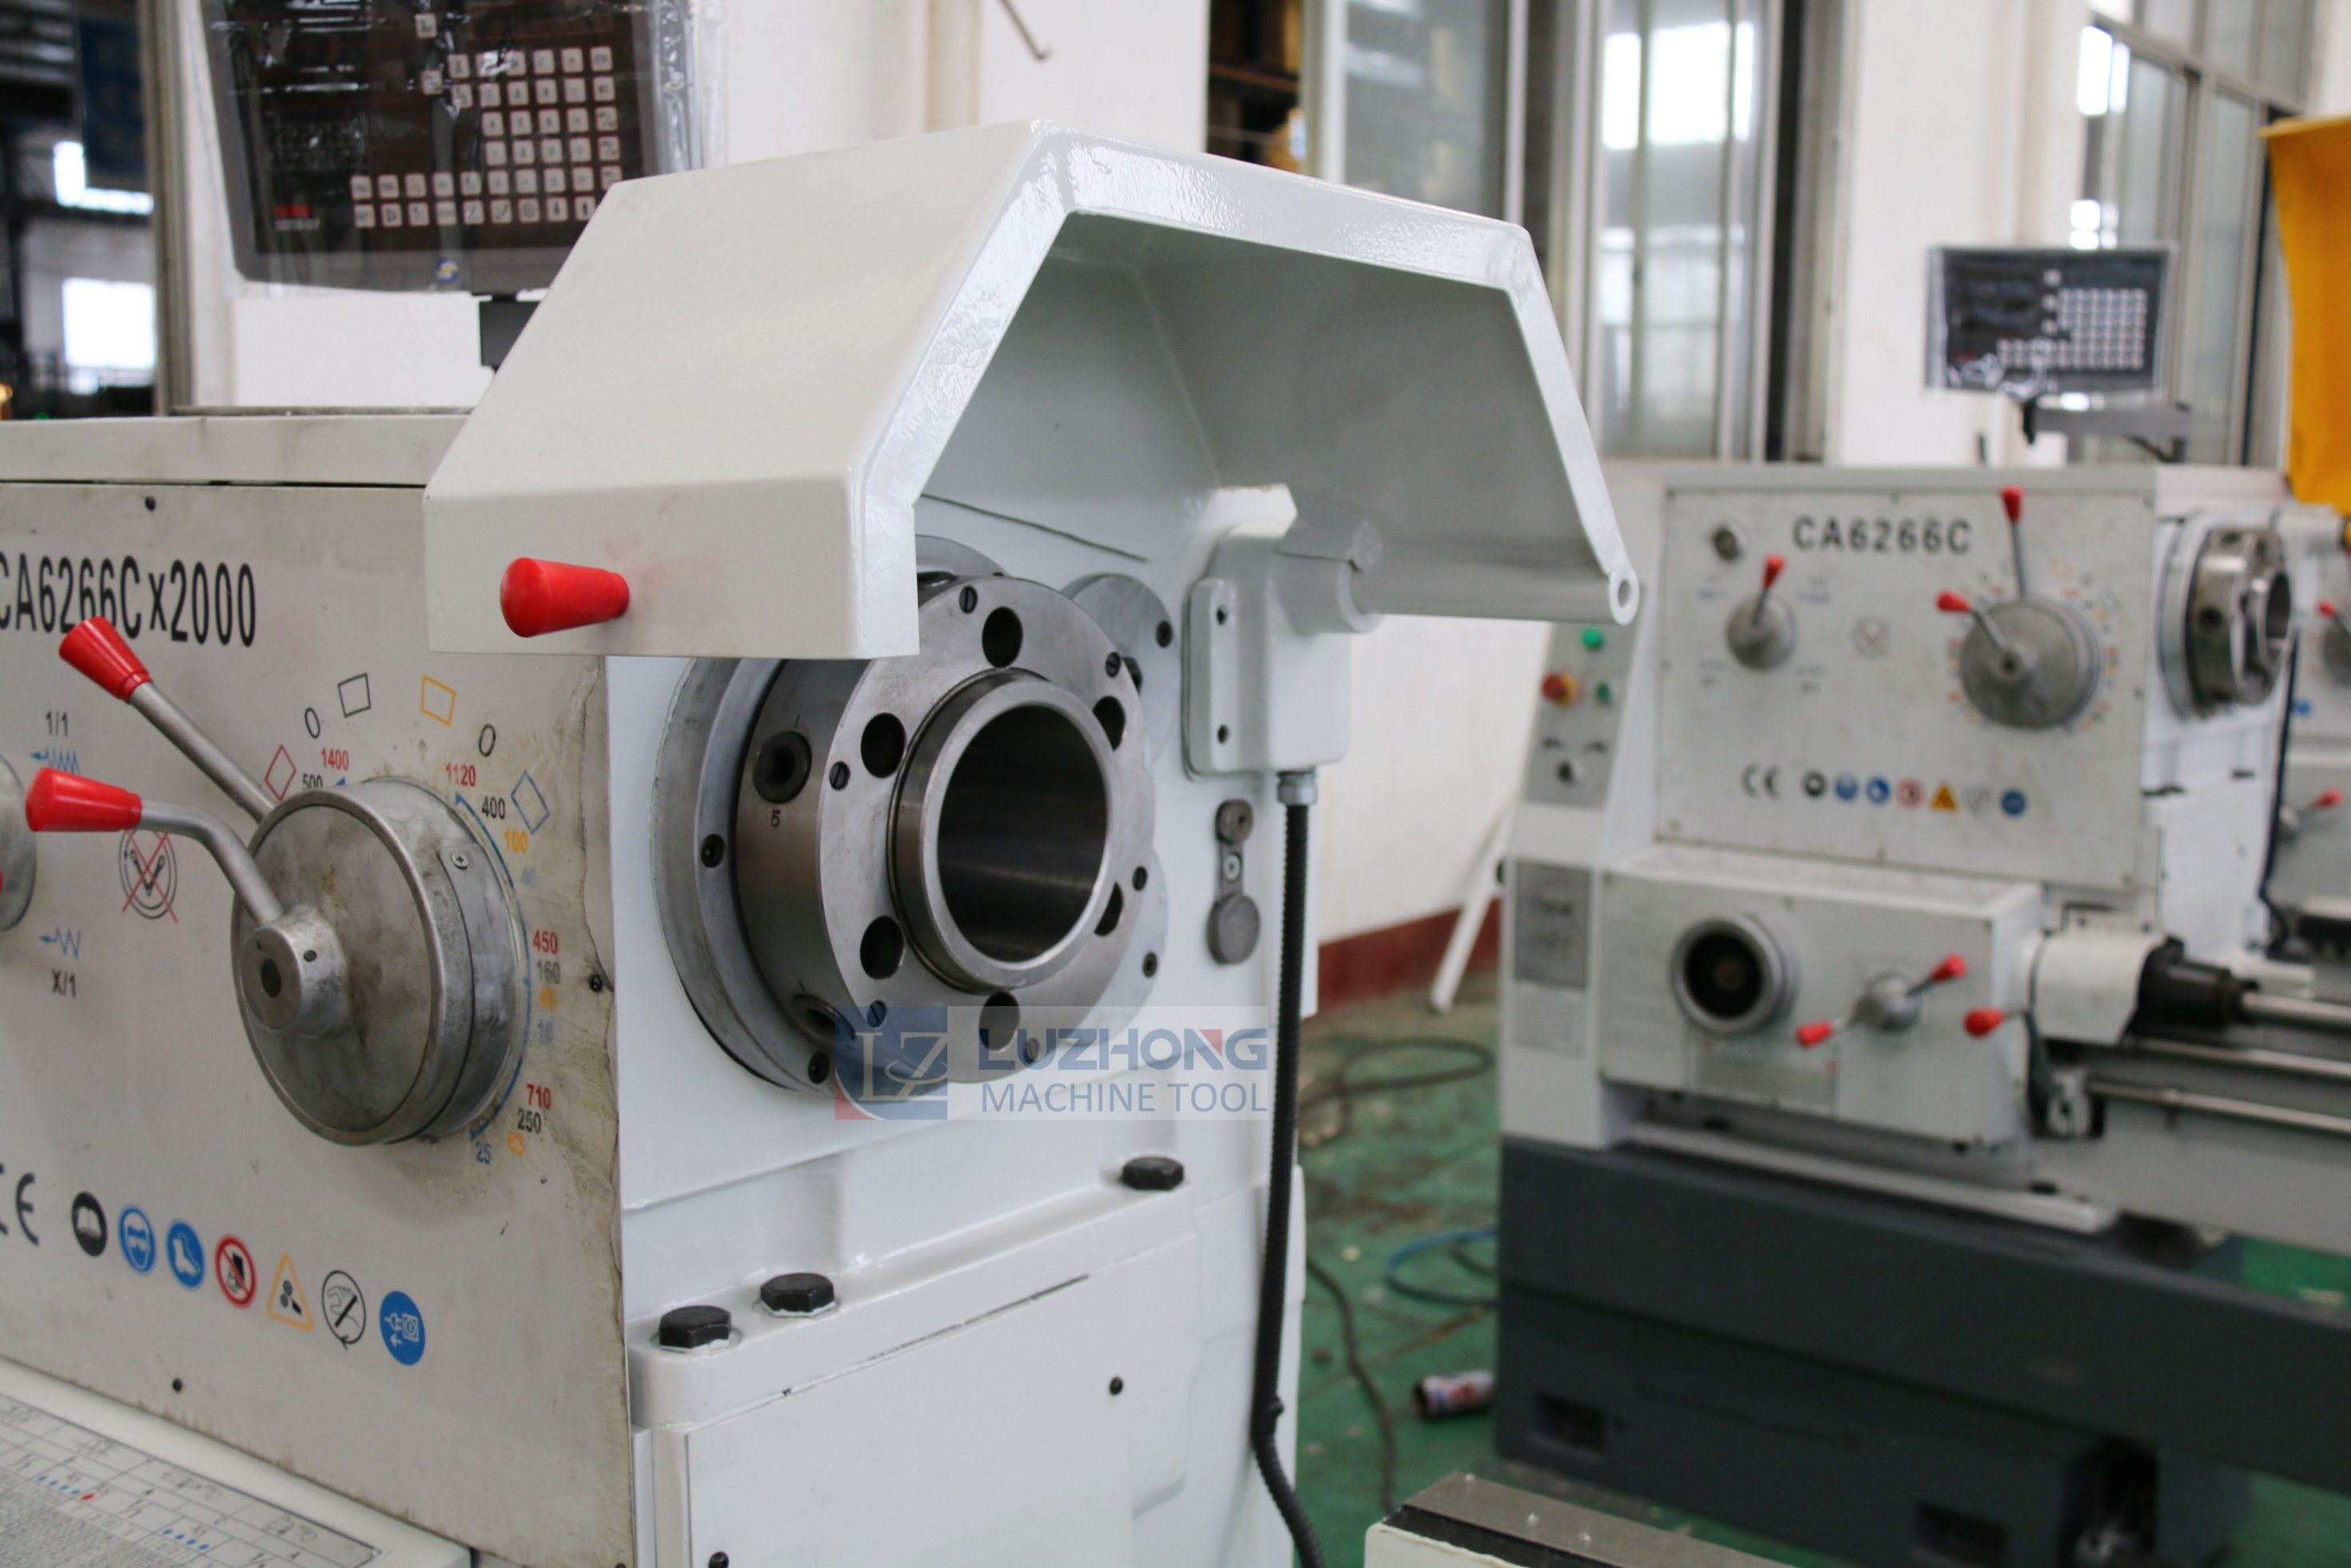 Horizontal Precision Gap Bed Metal Lathe (CA6240 CA6250 CA6266 CA6280) pictures & photos